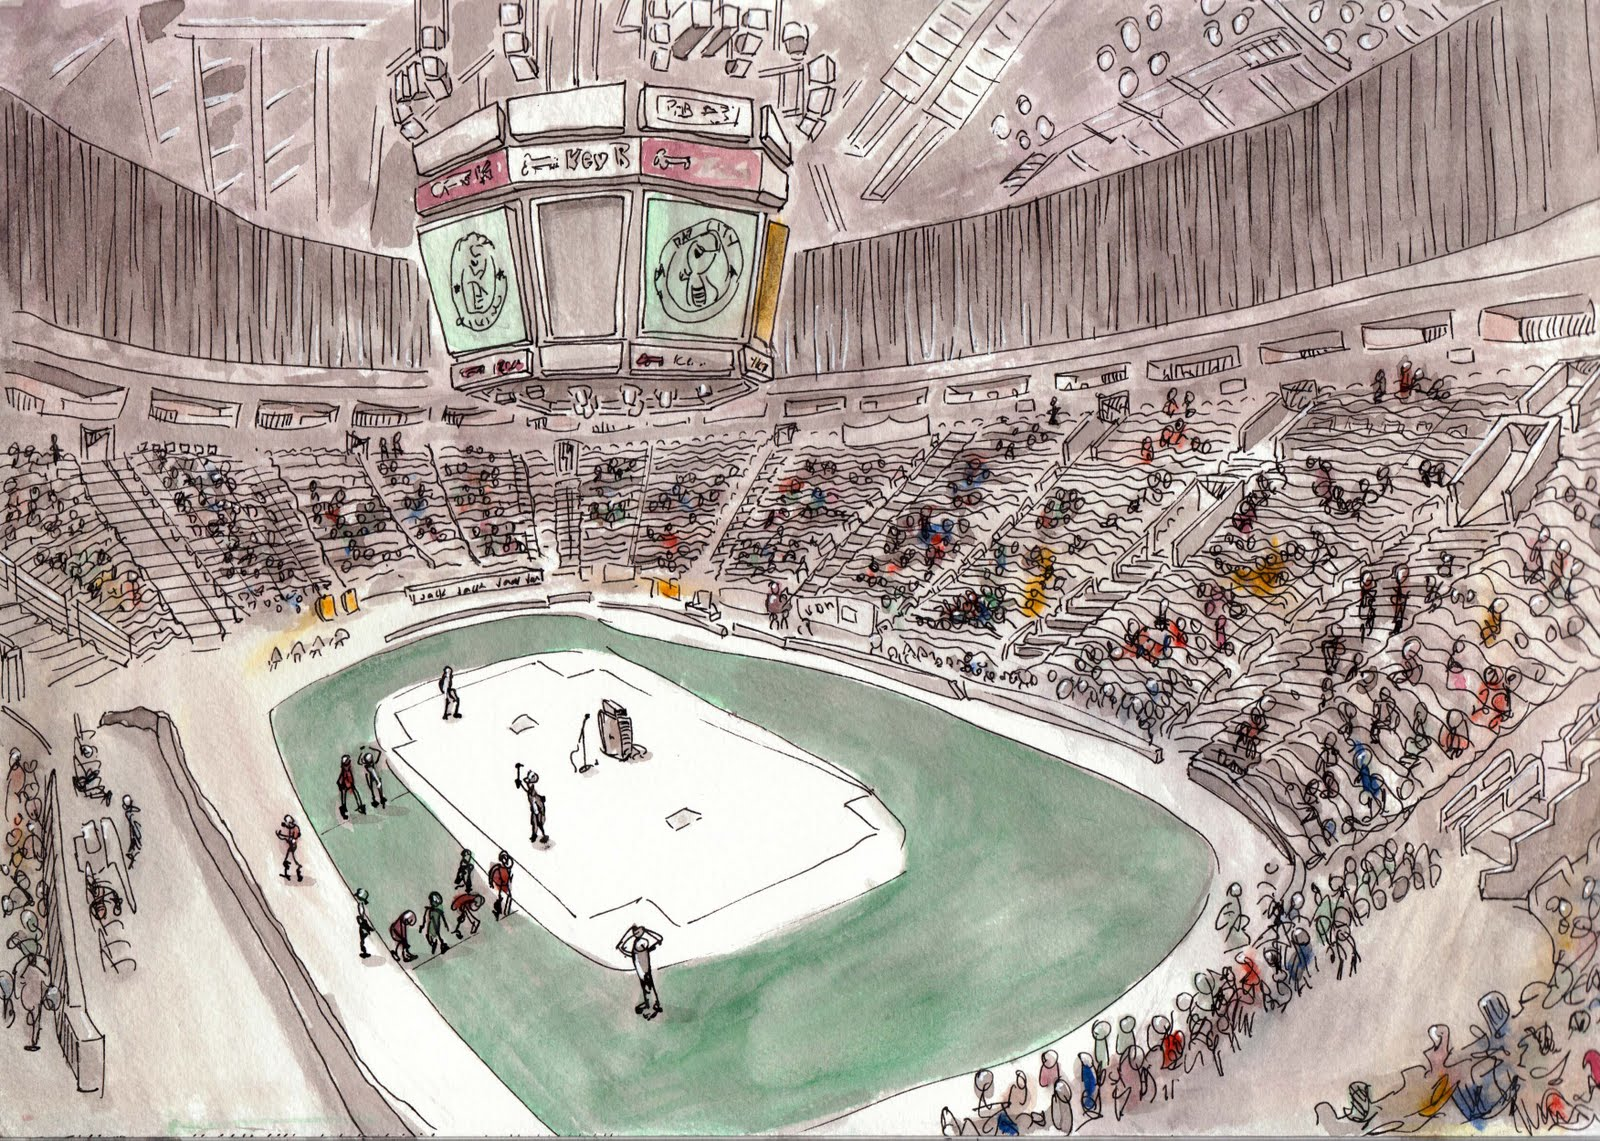 Seattle Arena Drawings Roller Girls at Key Arena